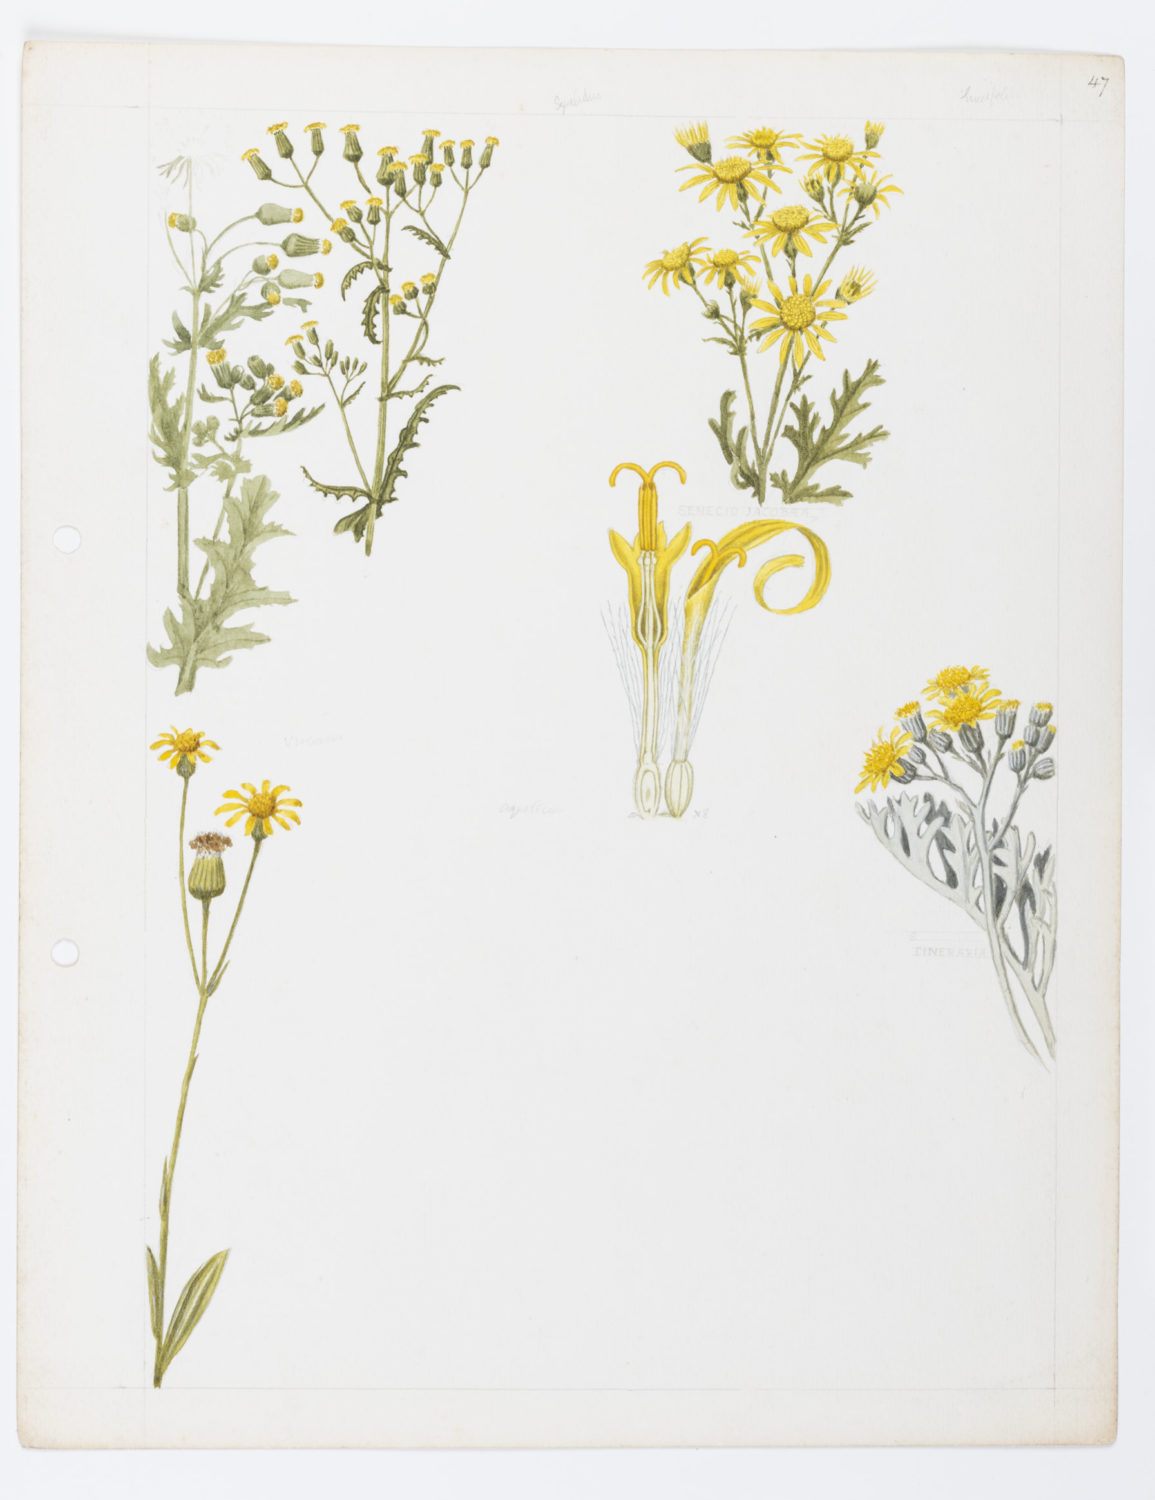 Illustration of Compositae: ragwort, fleawort and grounsel by Keble Martin